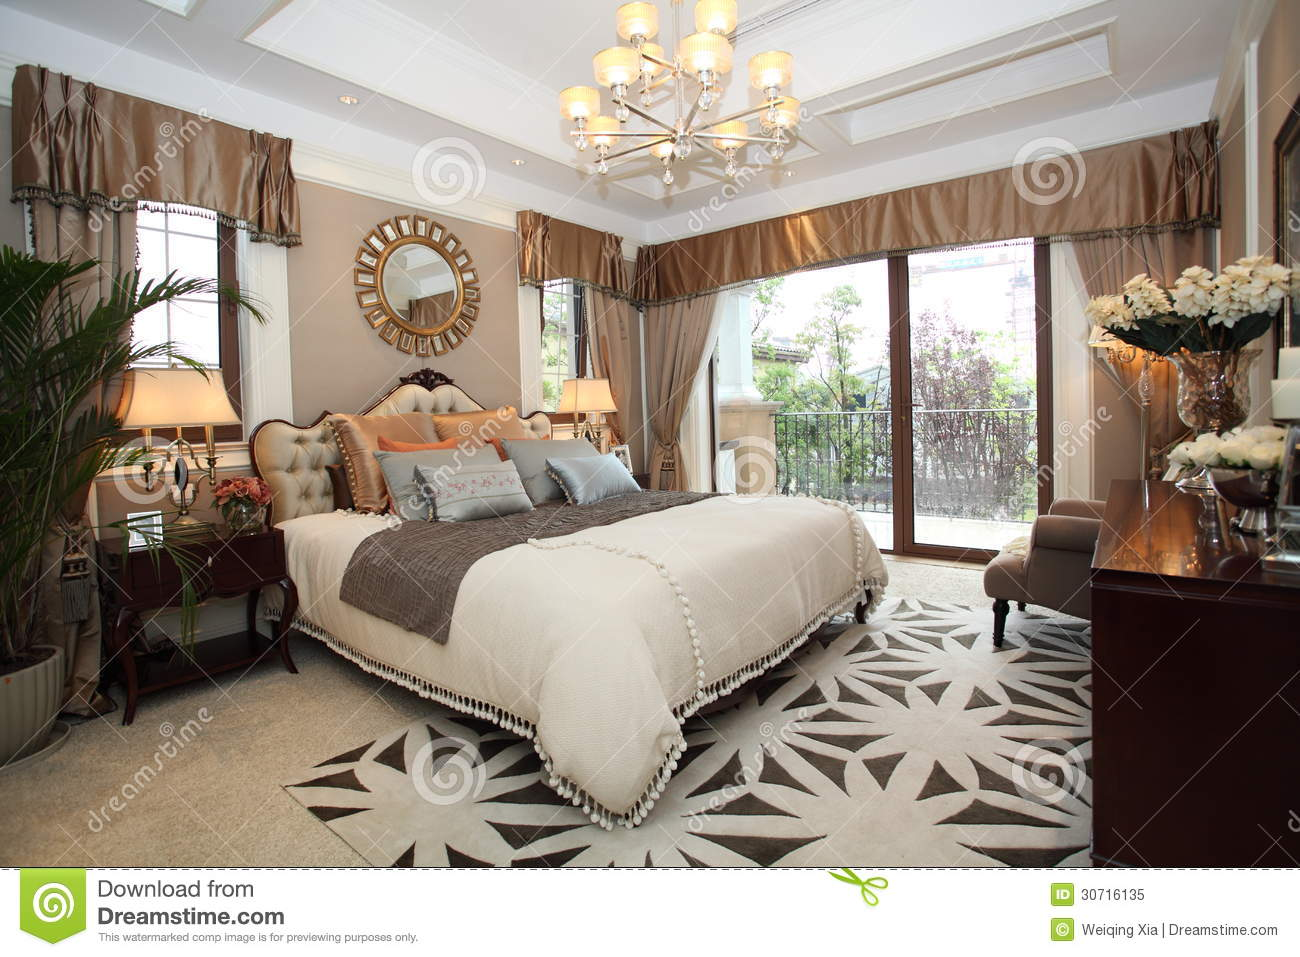 Decorating New Home Luxury Home Bedroom Royalty Free Stock Photo Image 30716135